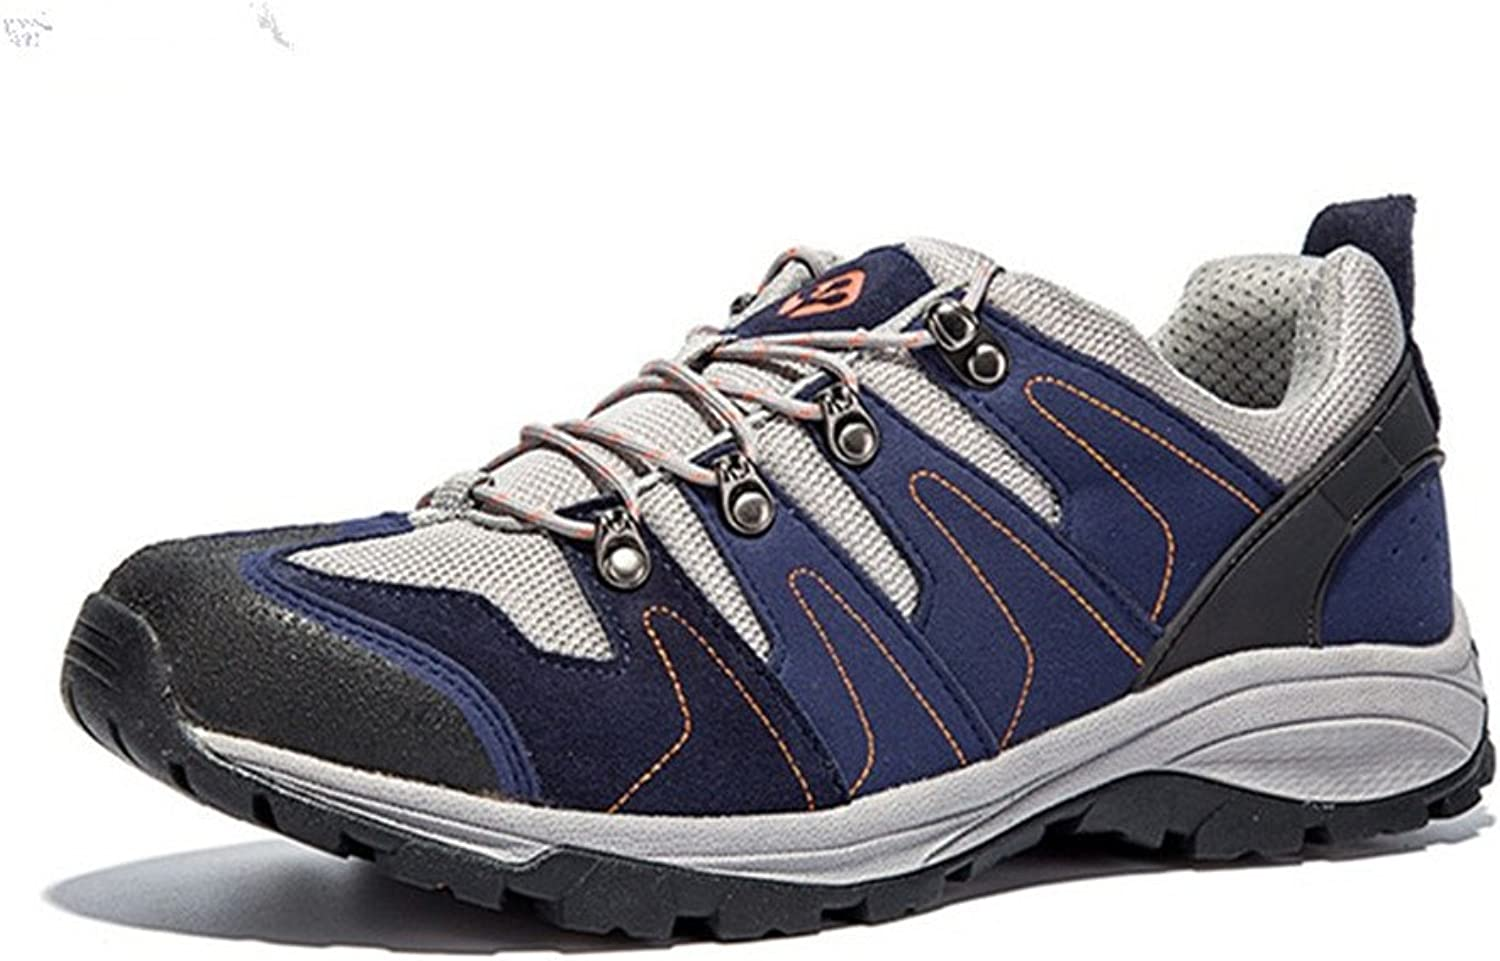 Senxi Outdoor Hiking shoes for Men and Women Outdoor Leisure shoes 2 color Optional